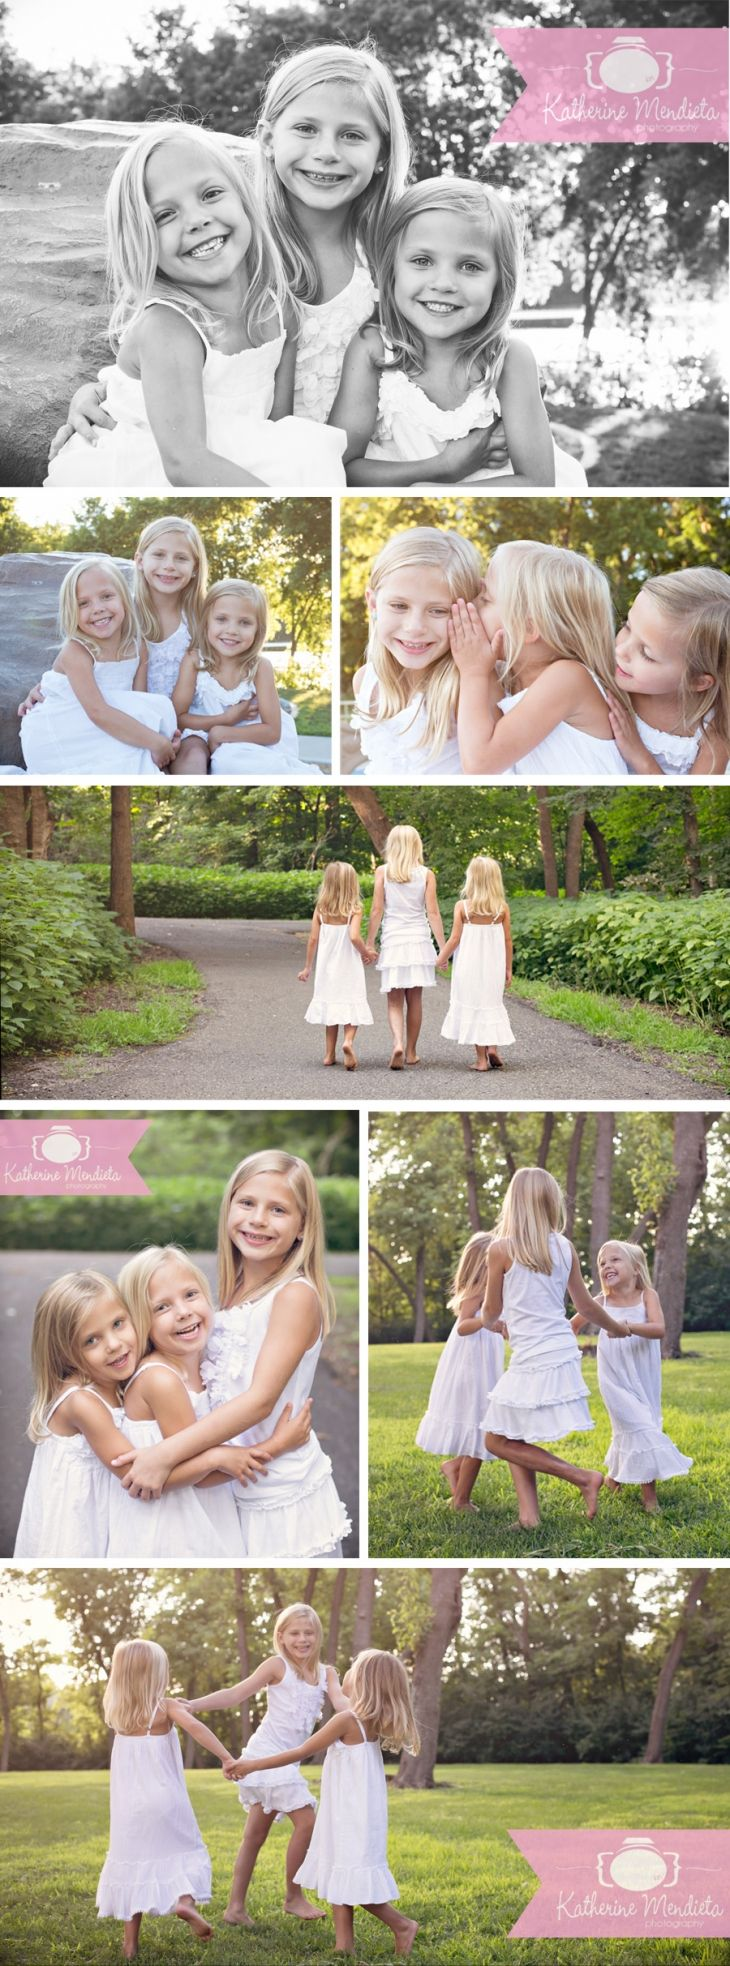 Three adorable blonde sisters in white dresses for their photo session in Eden Prarie, Minnesota. Telling each other secrets, laughing, and playing ring around the rosey » Katherine Mendieta Photography